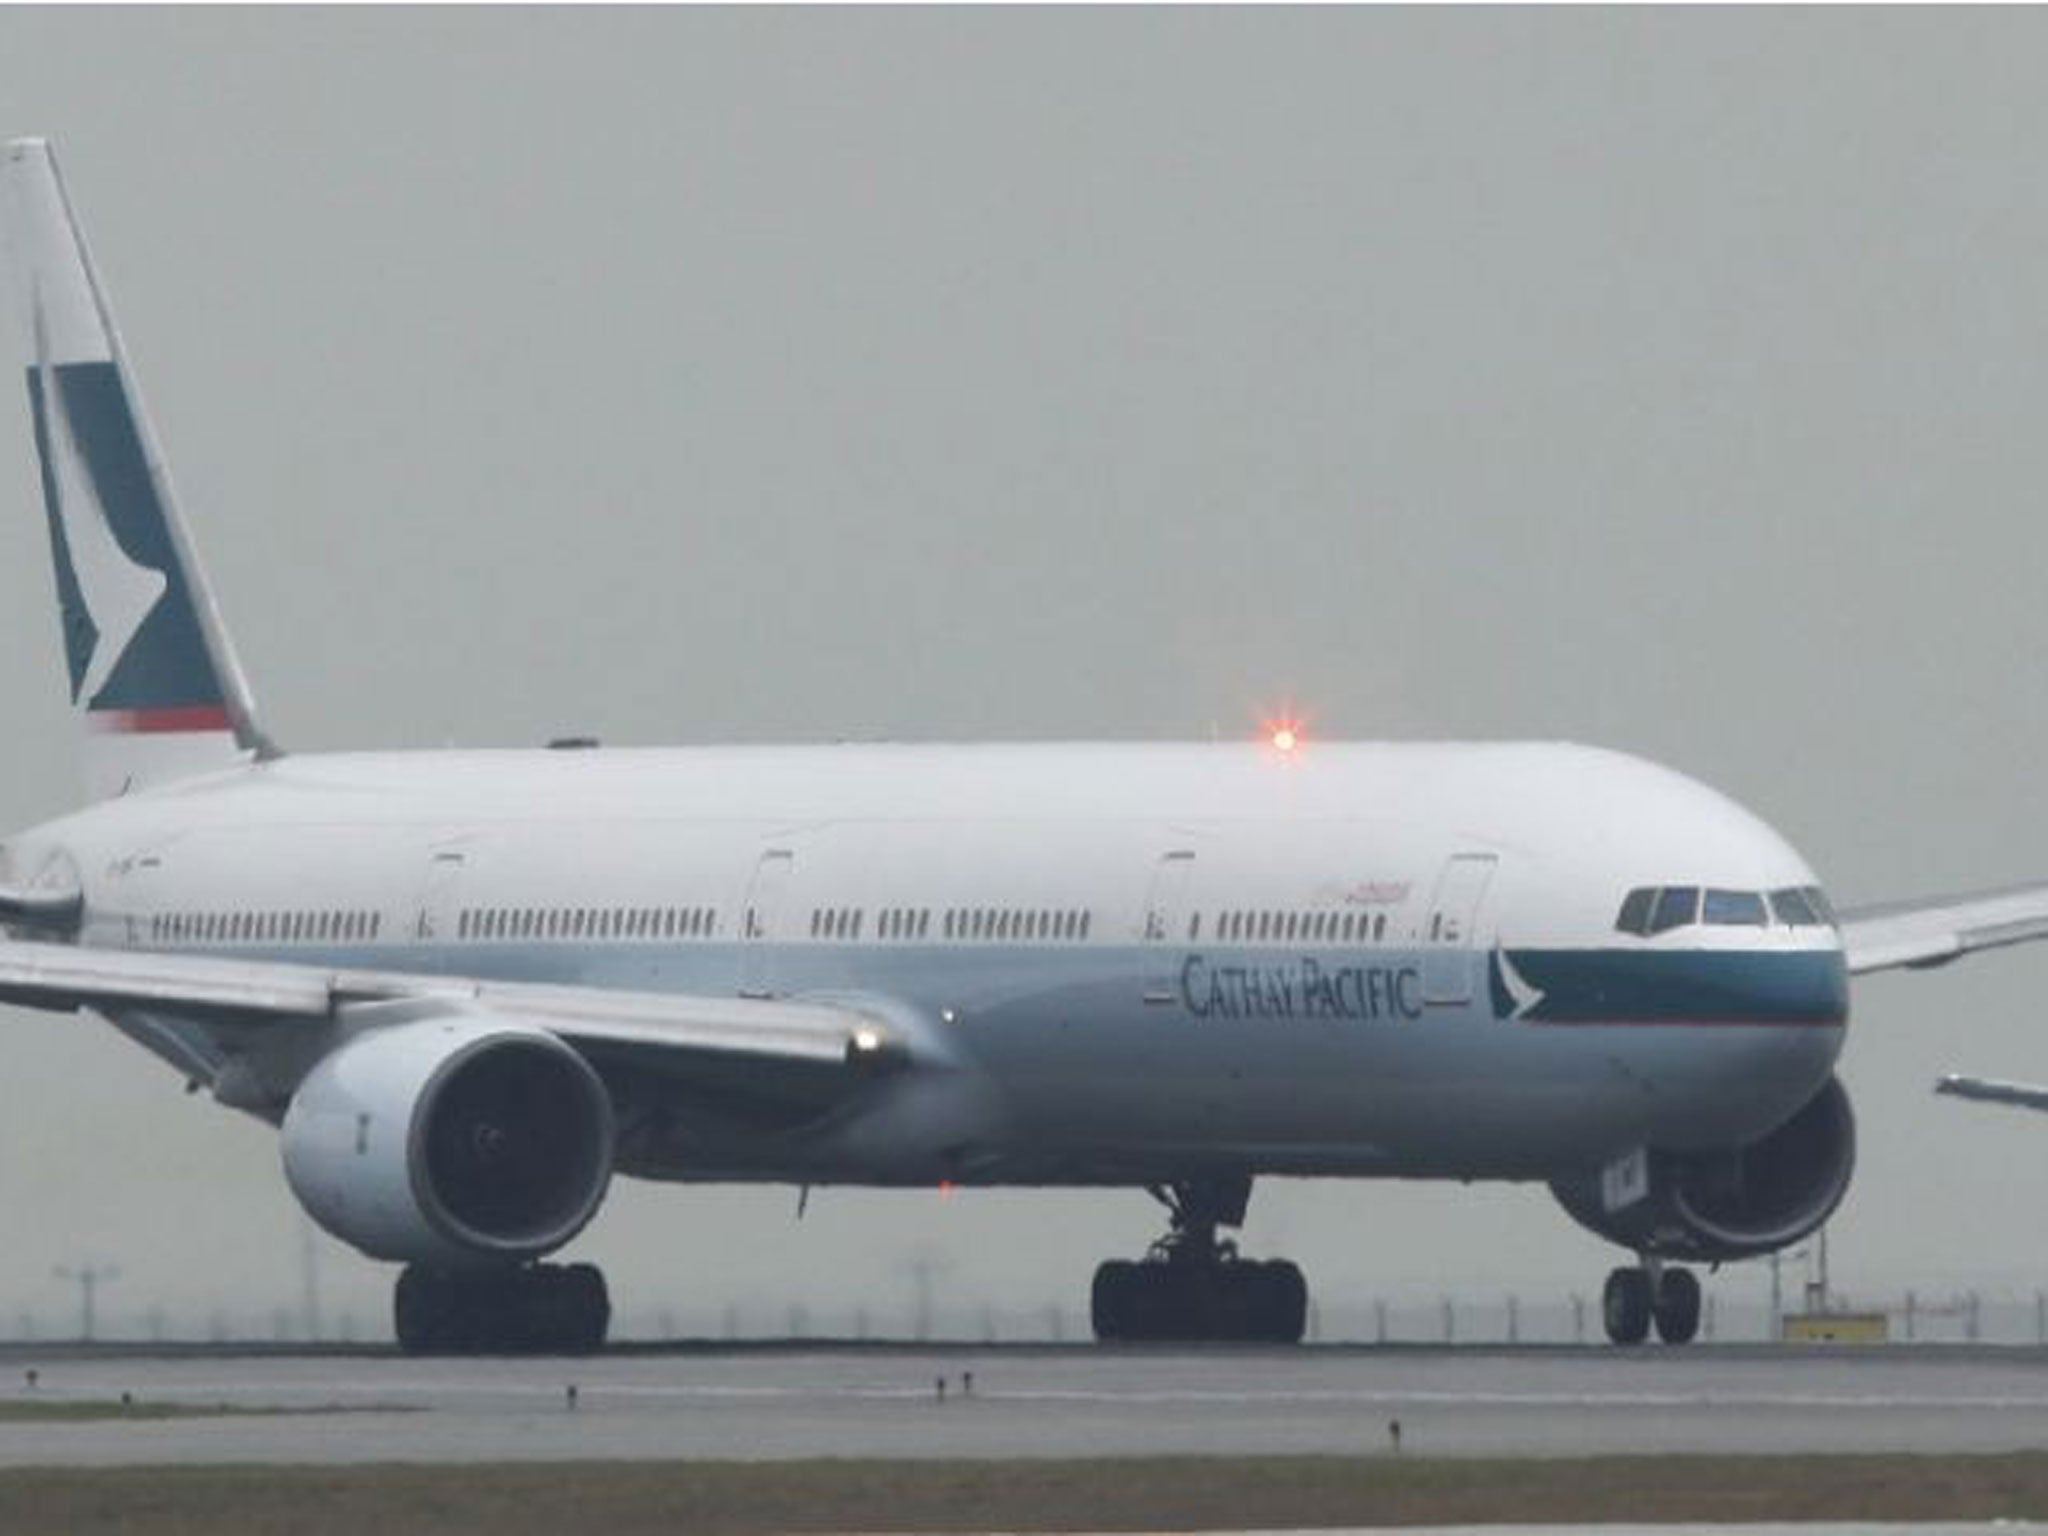 Cathay Pacific passengers kept inside stranded flight for 16 hours because of limits on crew's working hours